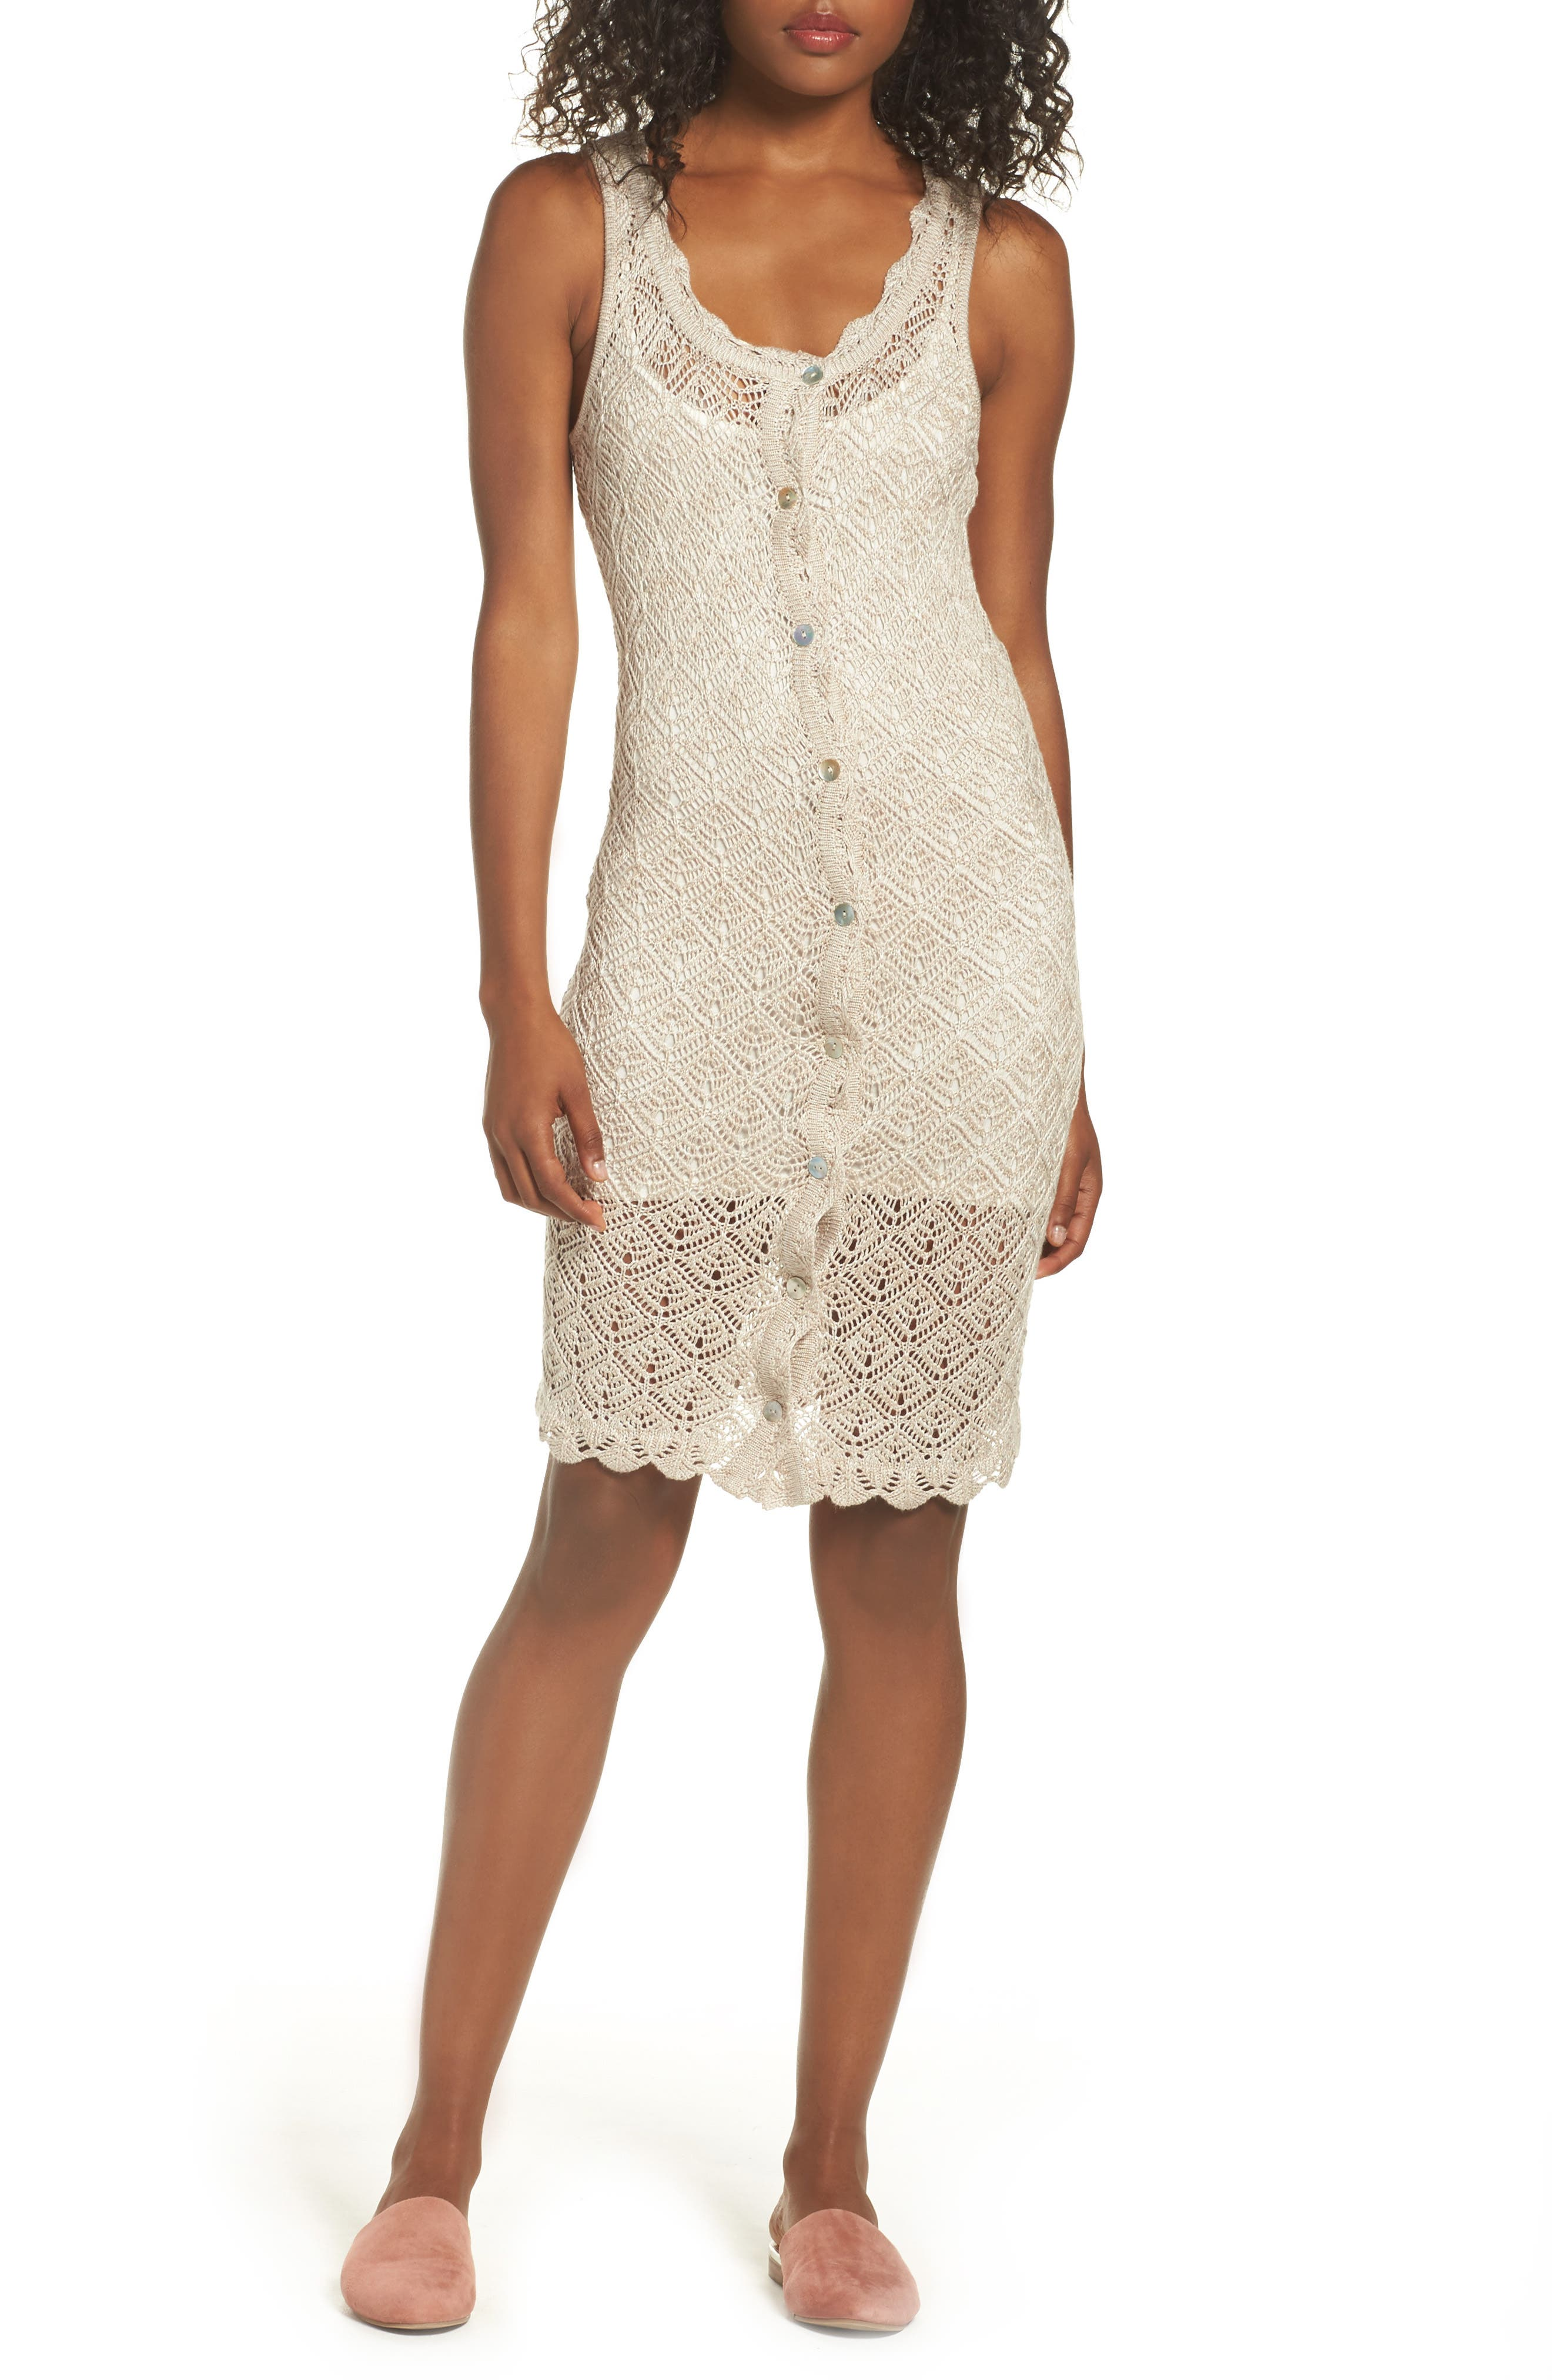 Picnic By The Lagoon Lace Dress,                         Main,                         color, Sand